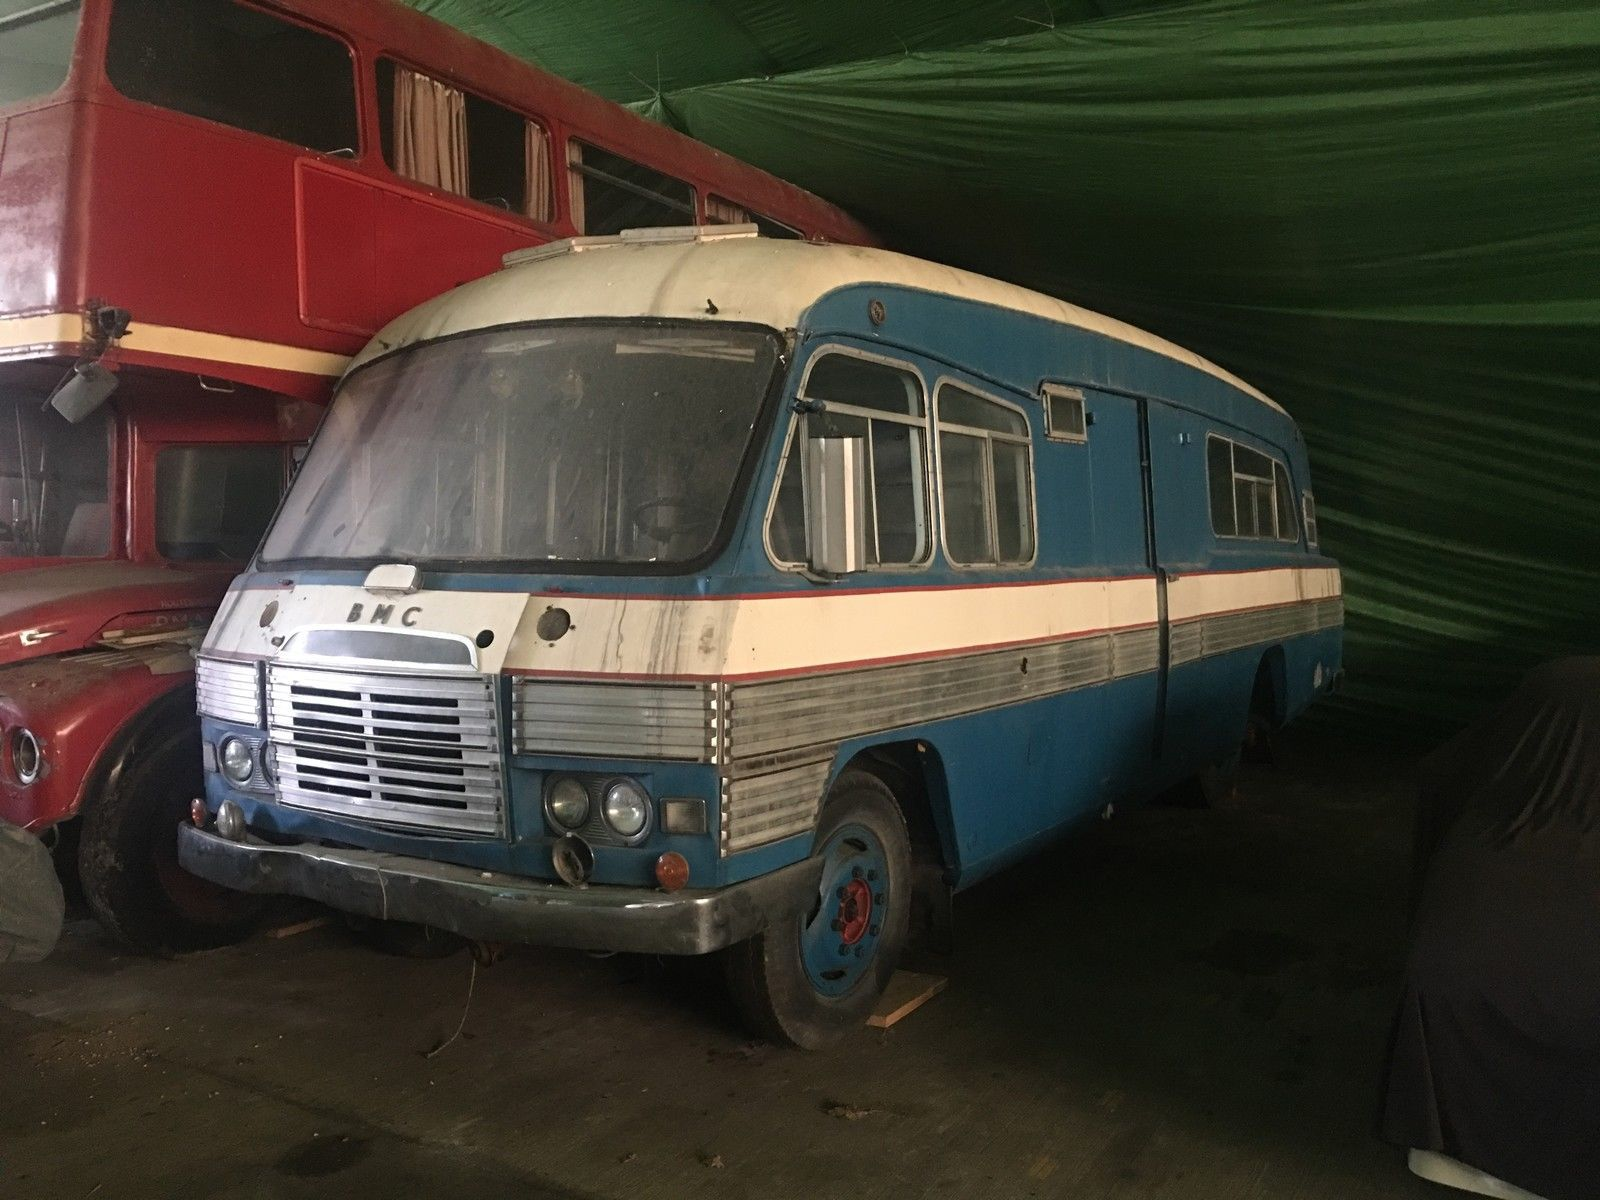 1963 BMC Pininfarina Technical Support Vehicle Barn Find Restoration Project